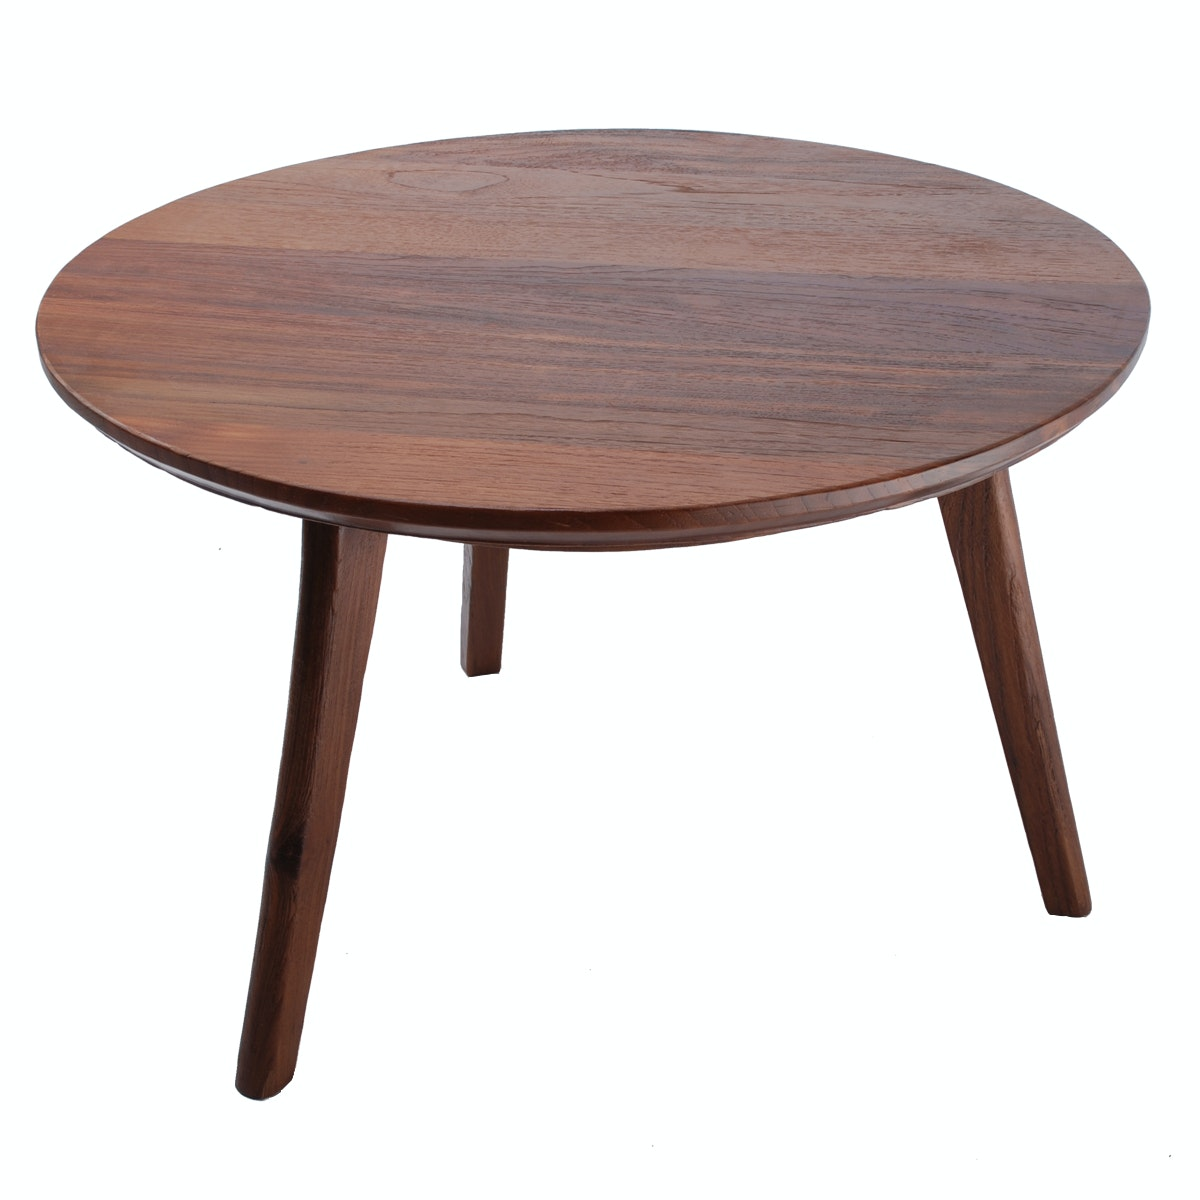 Grandisa Arsa Coffee Table (Jati)